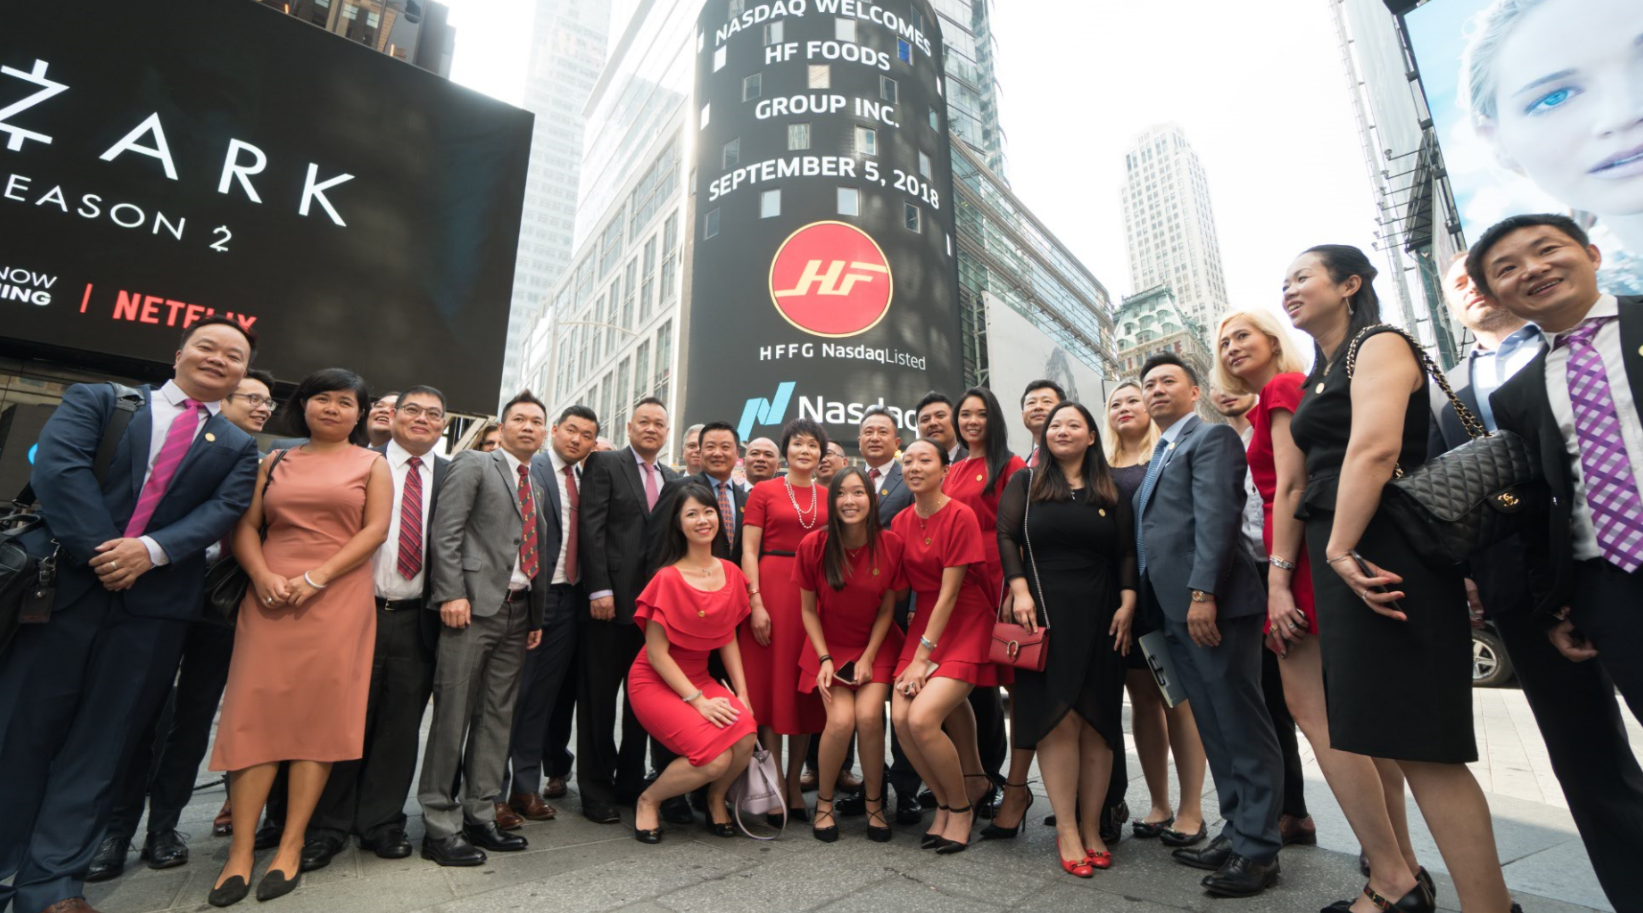 HF Foods Group Rings the Opening Bell of Nasdaq in New York